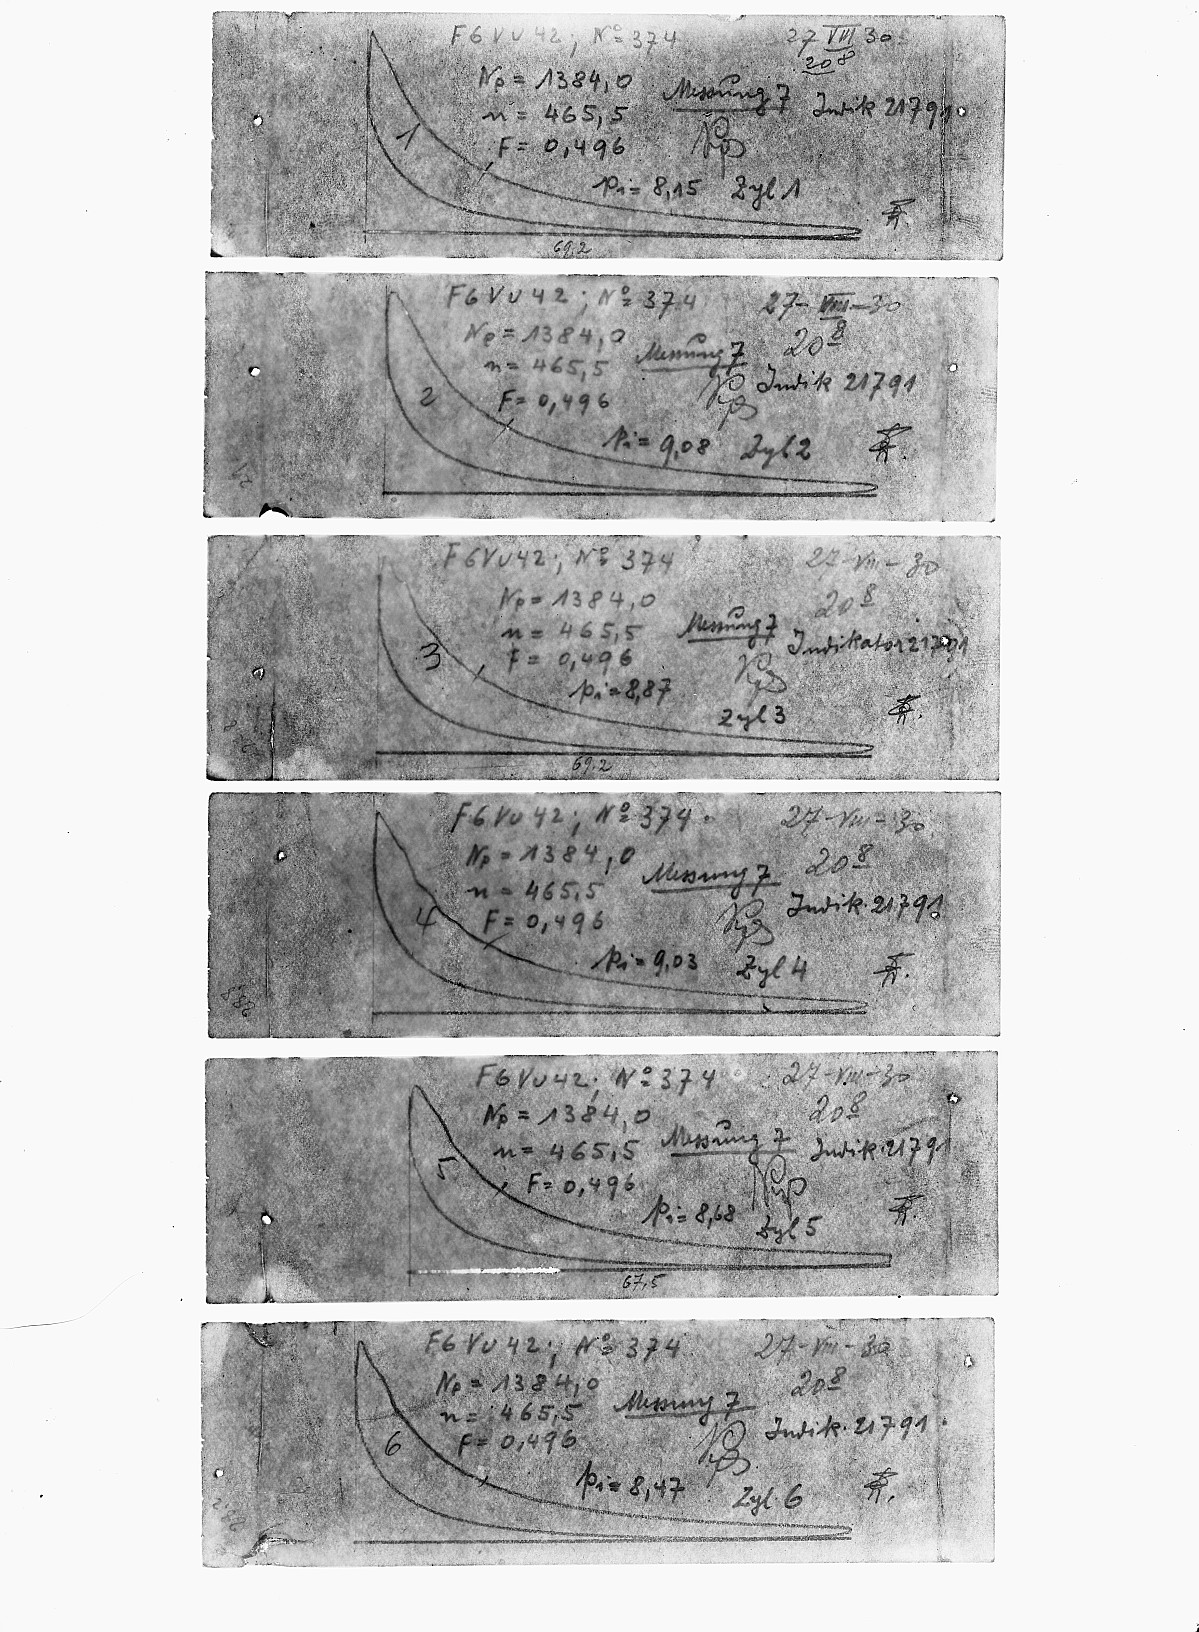 GFA 16/15192: Diagrams in the acceptance reports of GOMZY-LENINGRAD engine